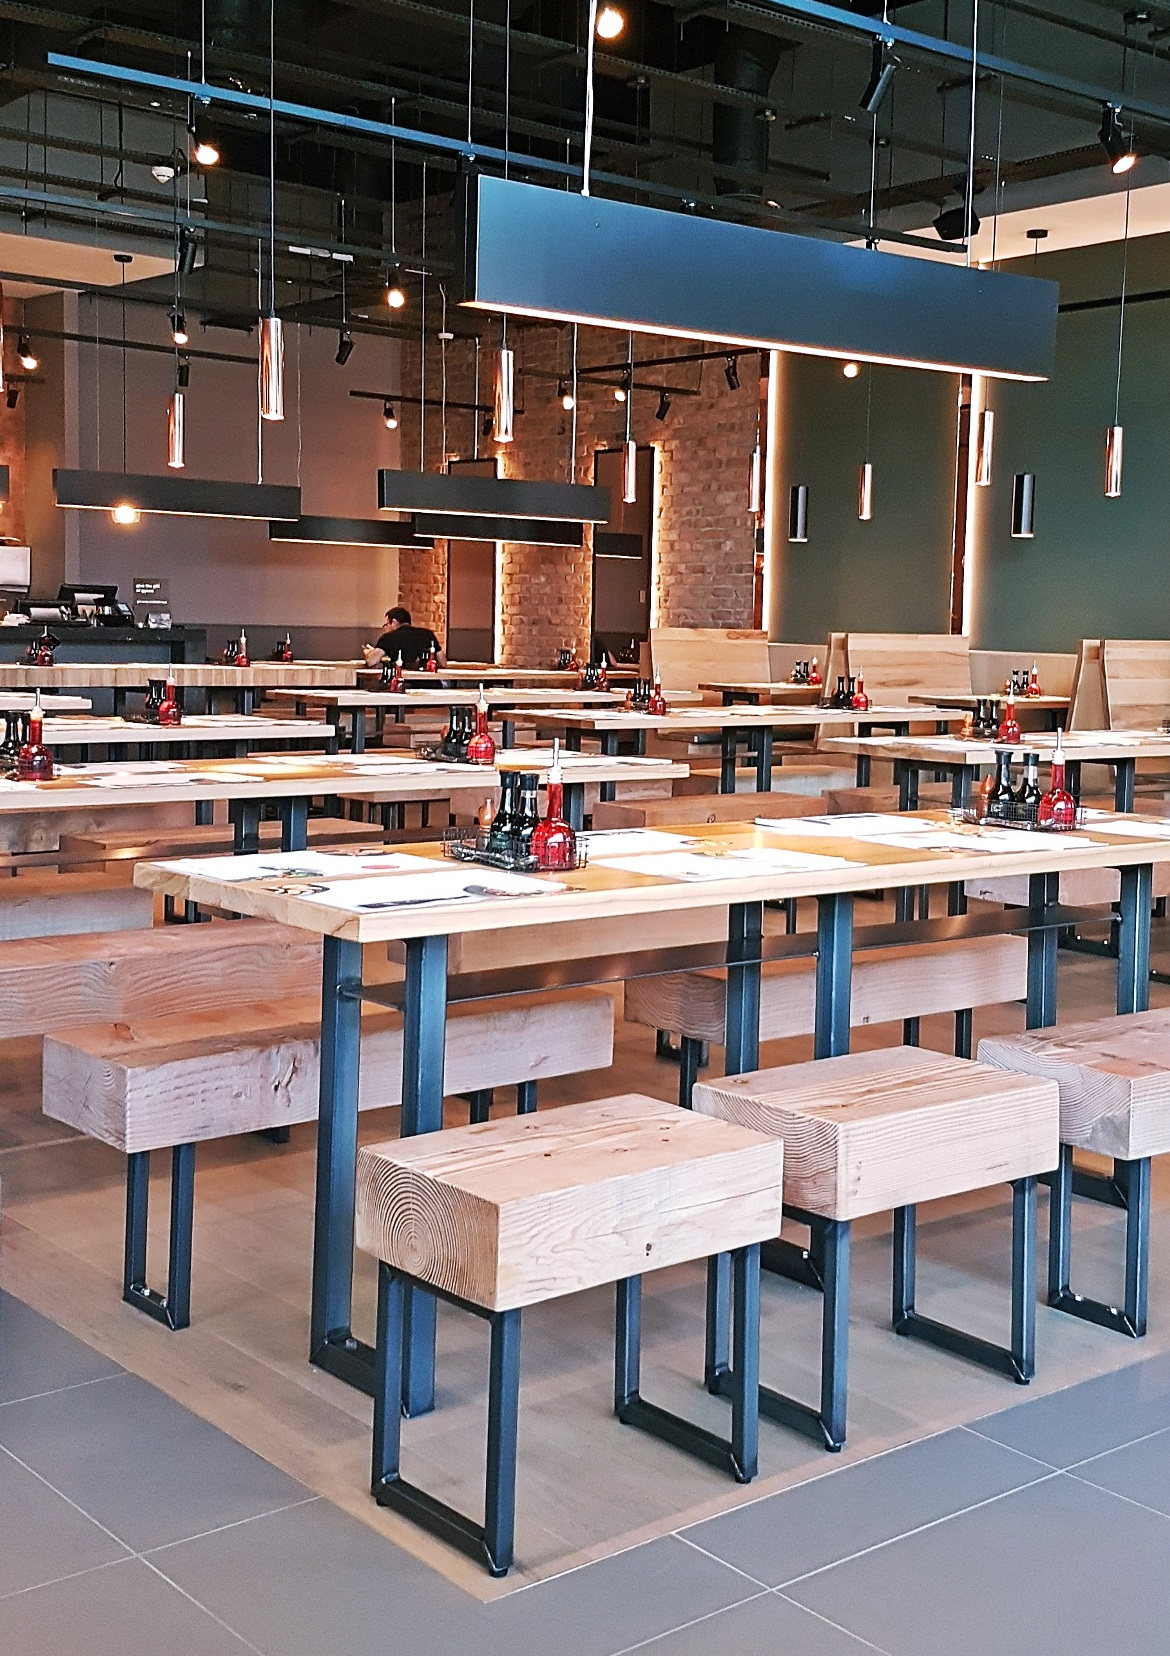 Interior of Wagamama at White Rose Leeds - Wagamama Menu Pairing, Review by BeckyBecky Blogs